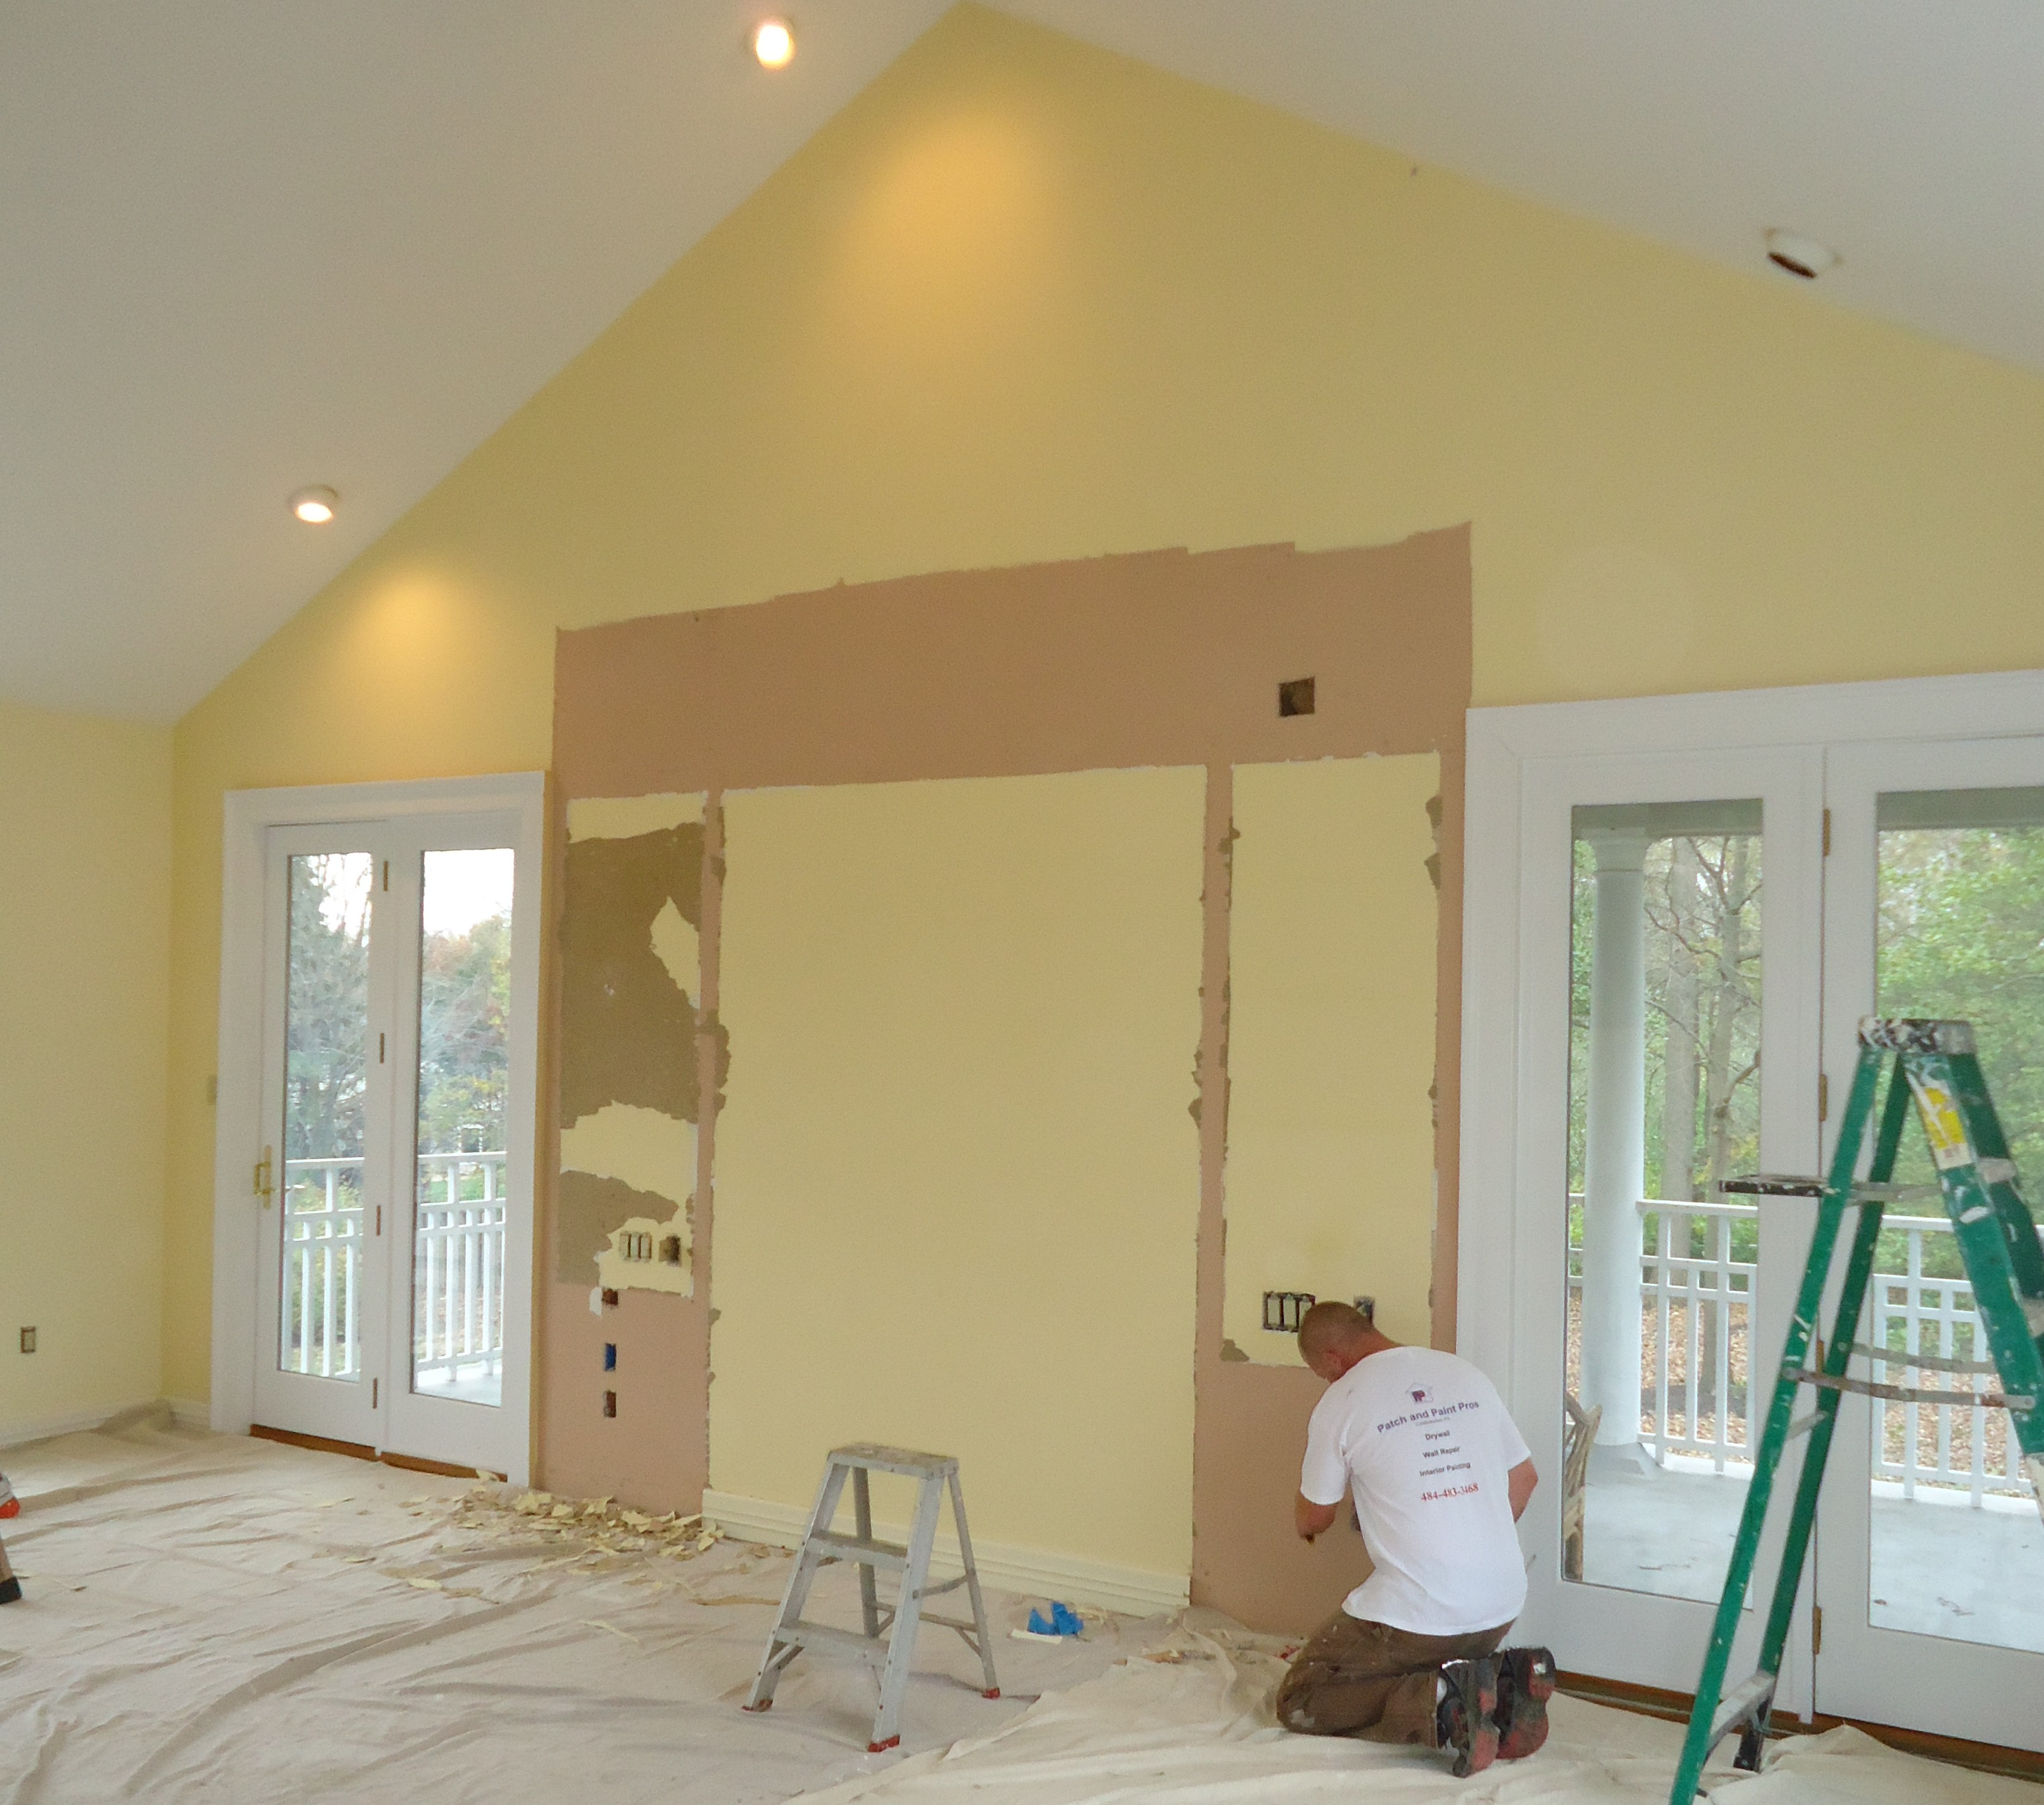 Professional Exterior Painting Services: Interior House Painting